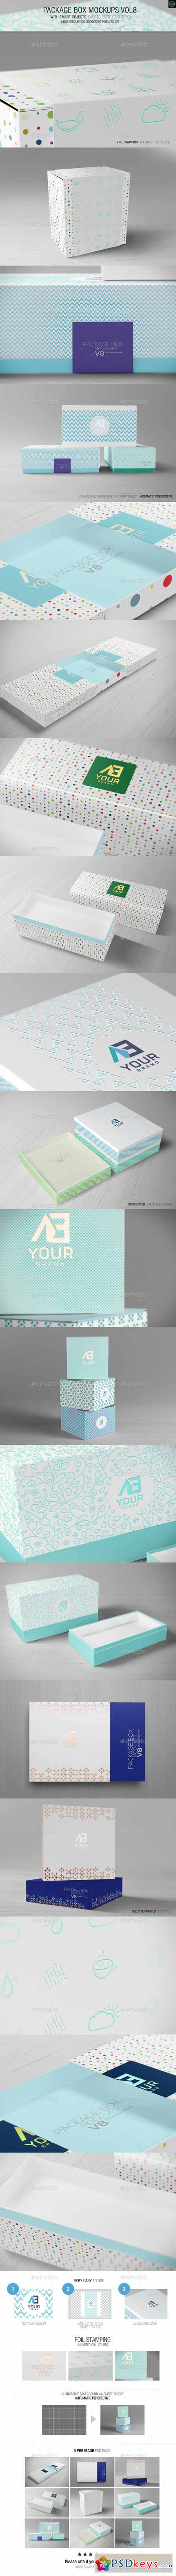 Package Box Mockups Vol8 10704514 » Free Download Photoshop